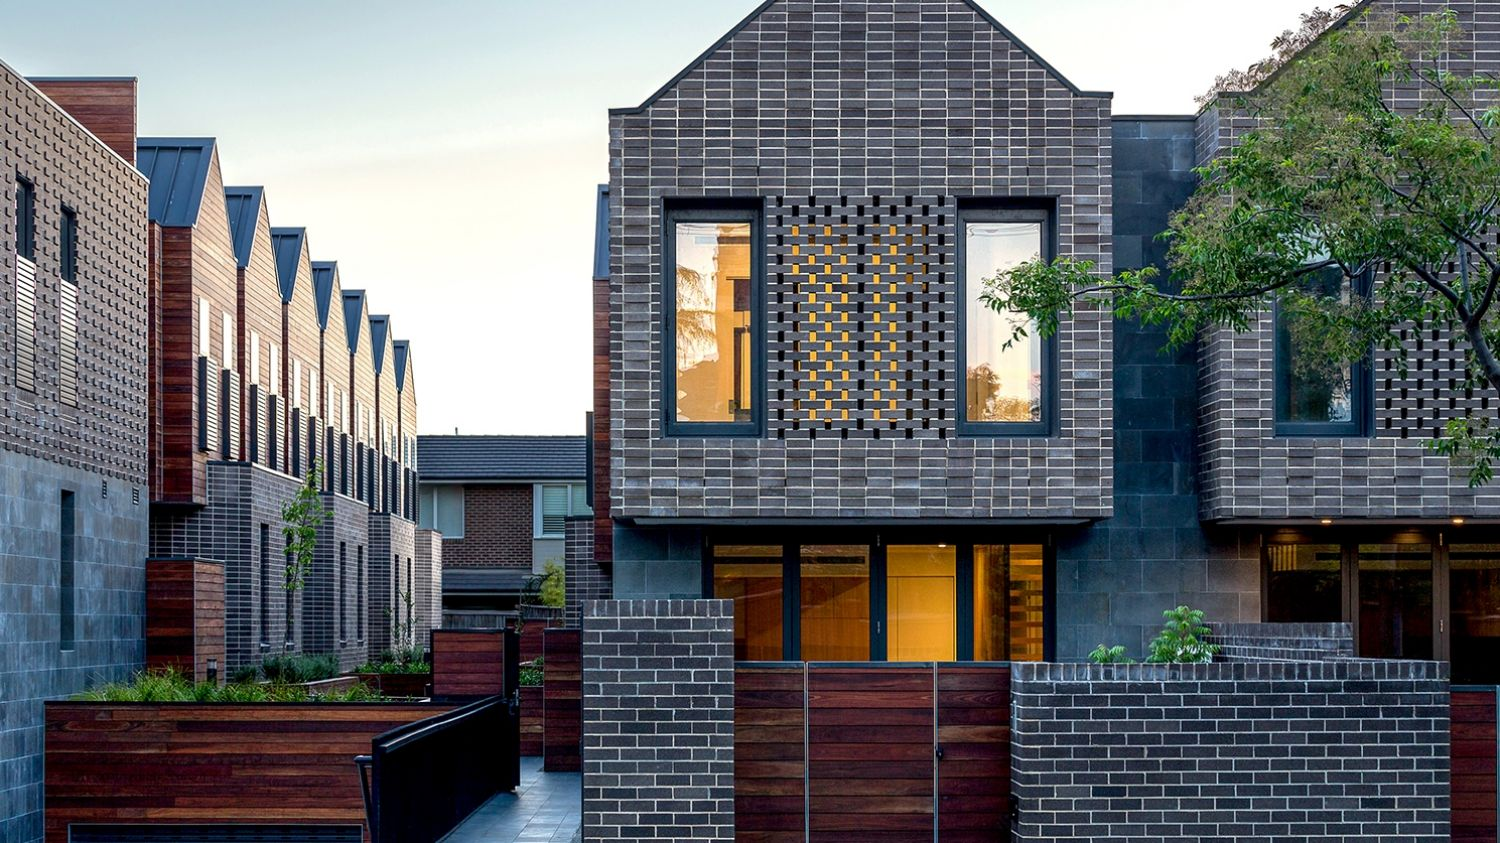 KUD's Barkers Road townhouses